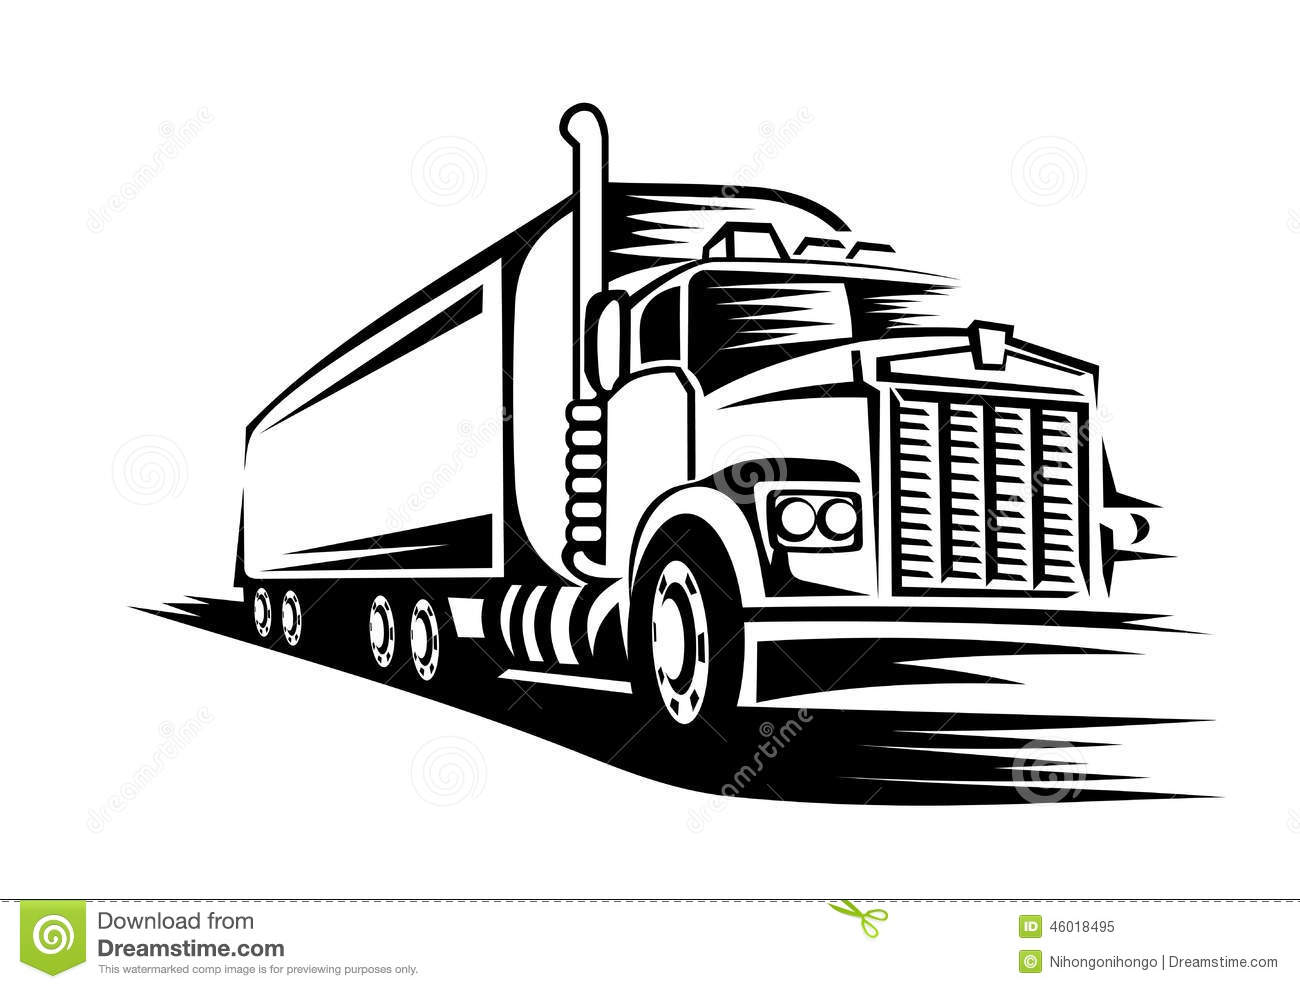 Kalium gifts moreover Honda Hand Style Graffiti Jdm Racing Die Cut Vinyl Sticker Decal Sticky Addiction further Risk Management Funny Quotes furthermore 318981586083654425 as well Stock Illustration Moving Truck Delivery Road Transportation Design Concept Image46018495. on the trucker